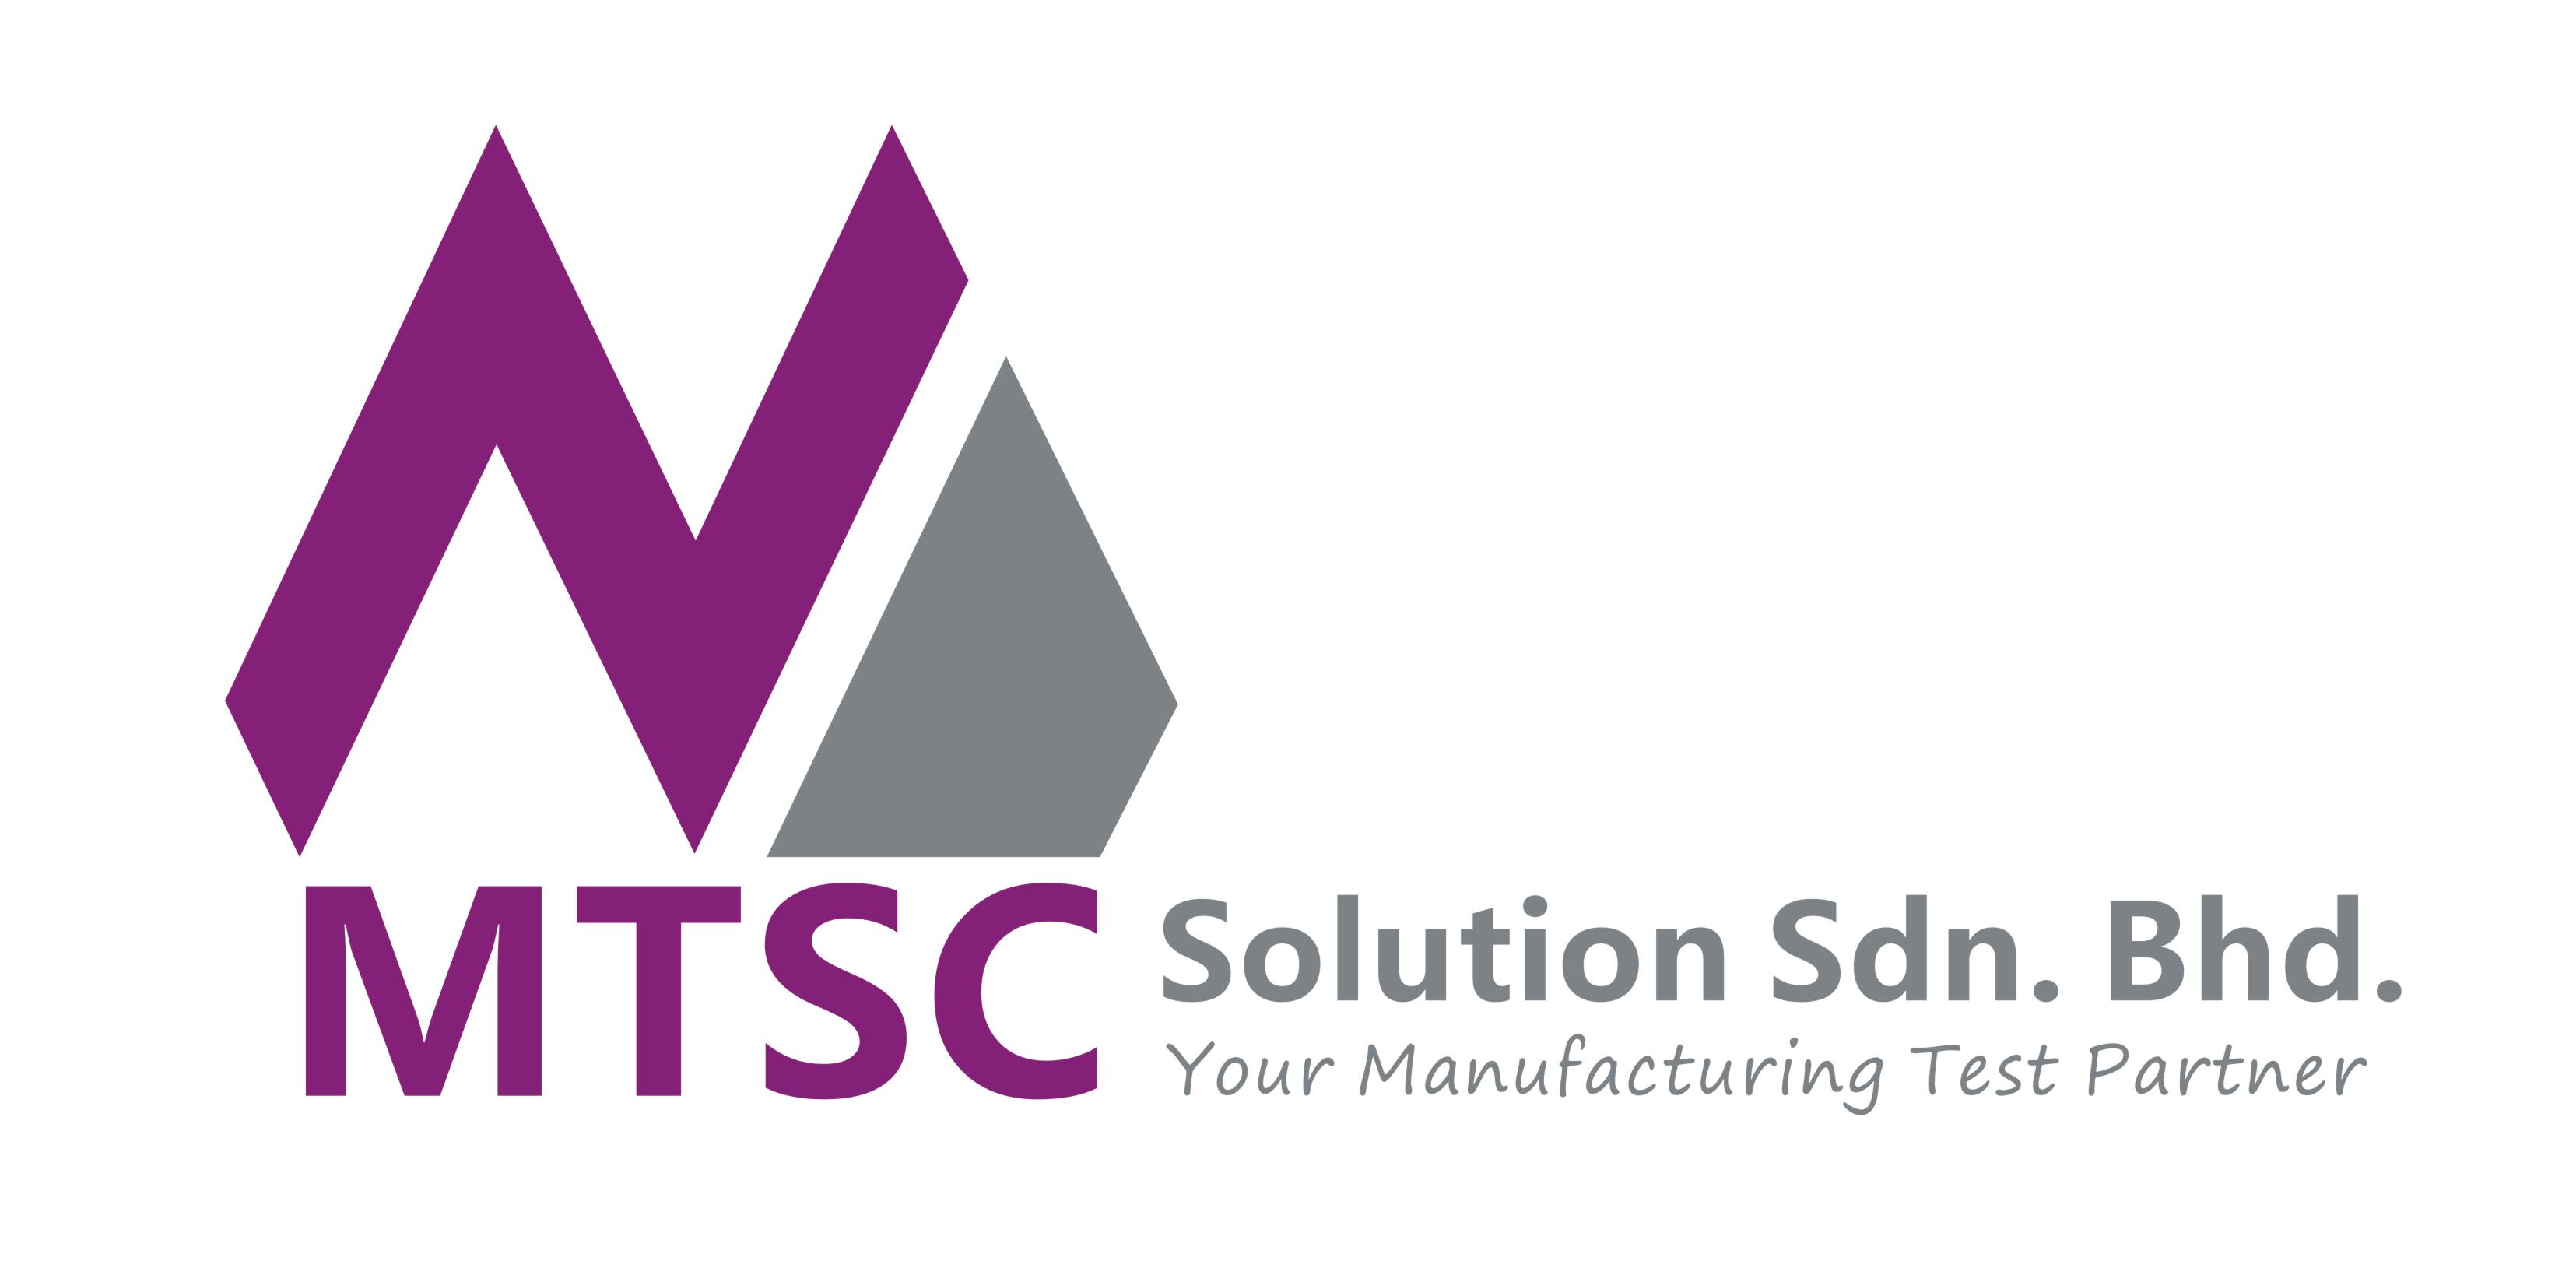 MTSC Solution Sdn. Bhd. Indonesia